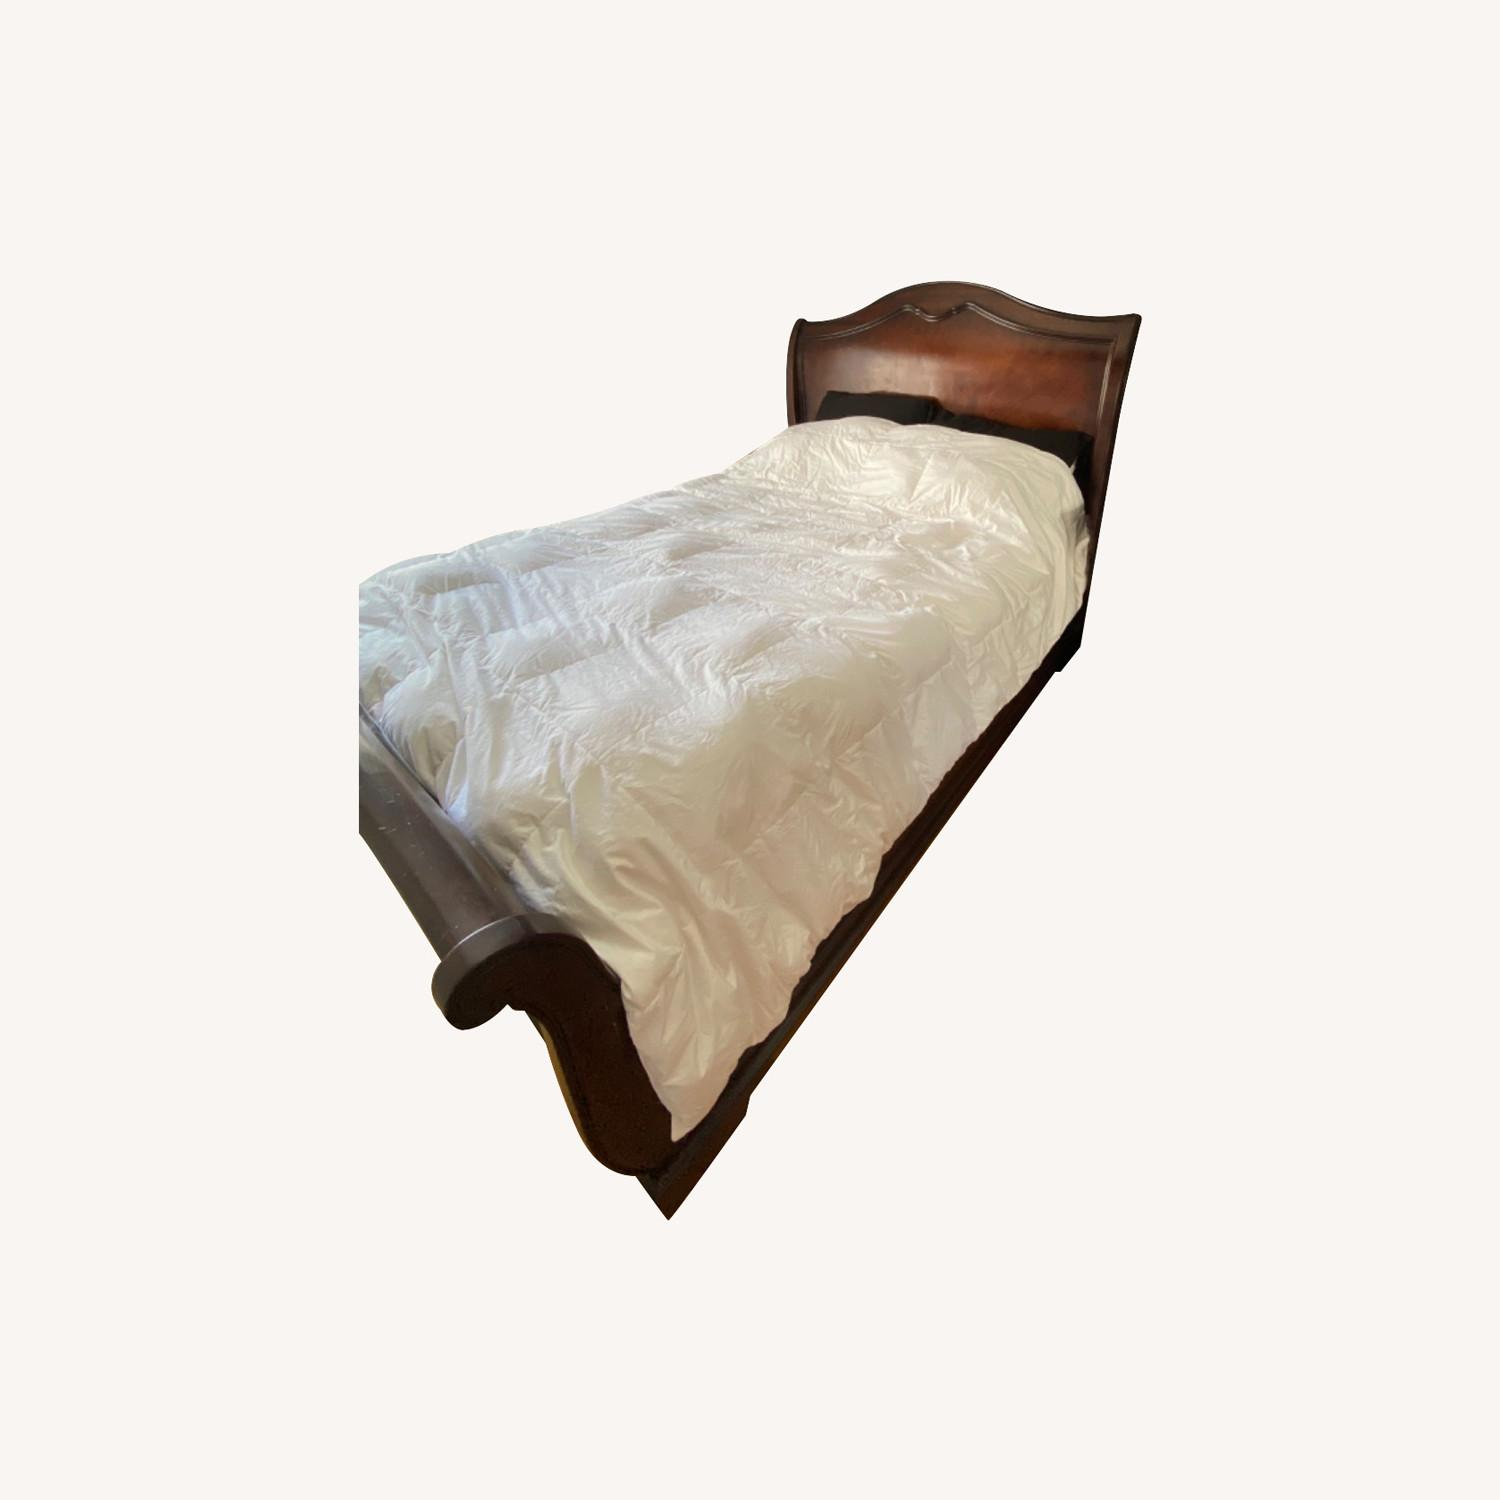 Raymour & Flanigan Sleigh Queen Bed - image-0